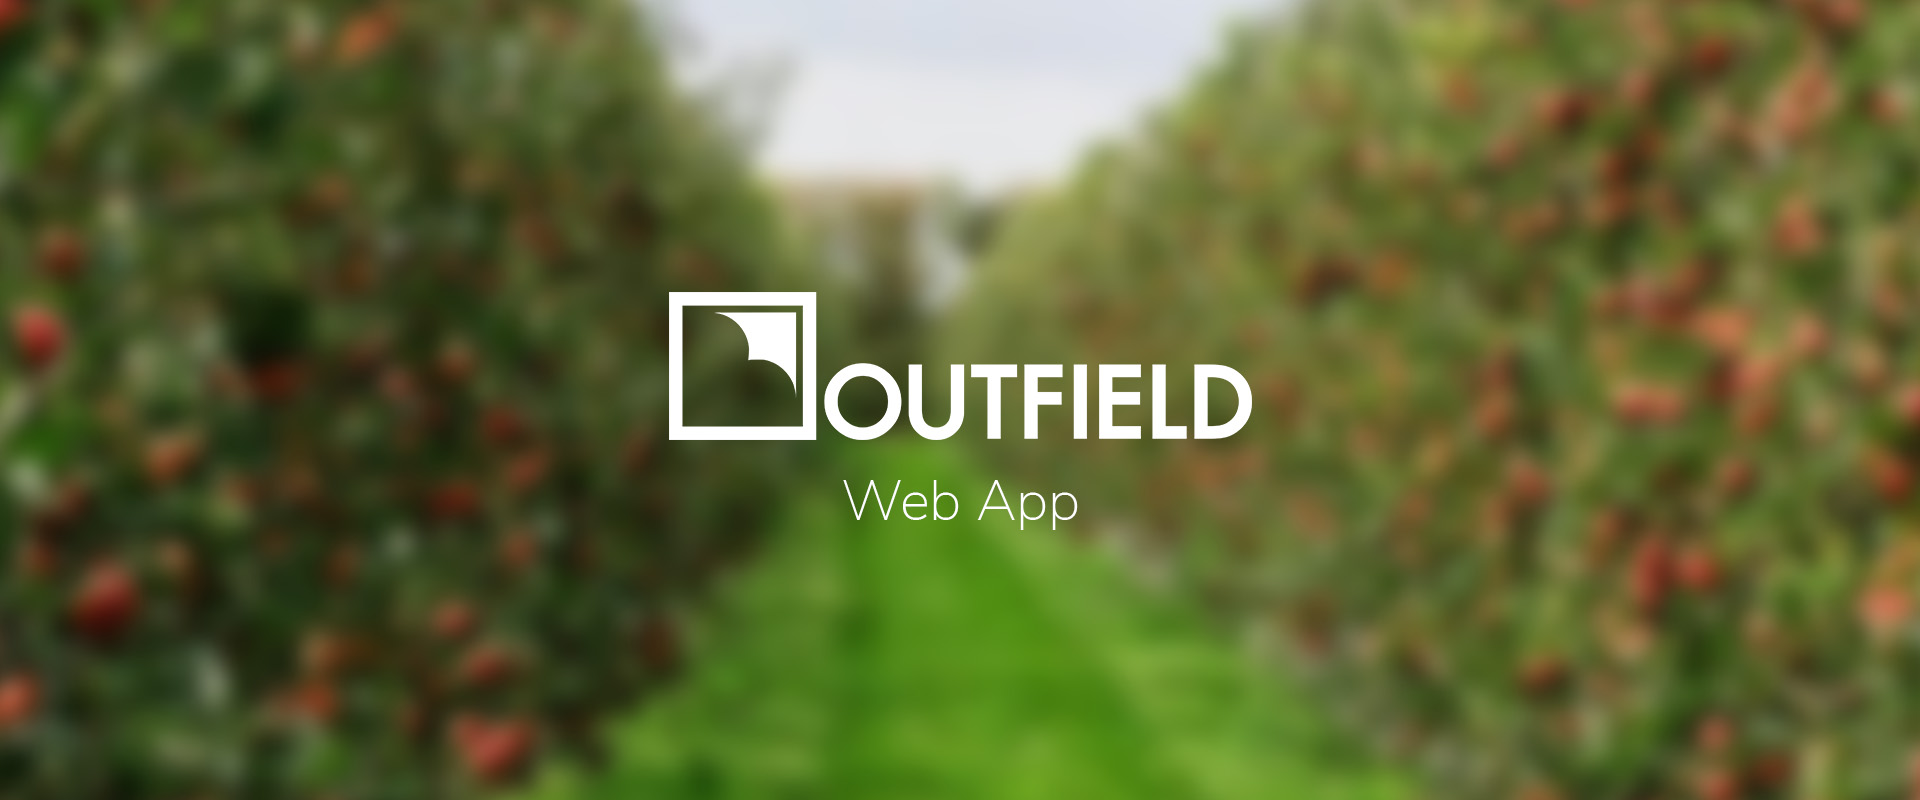 Announcing the Outfield Web App